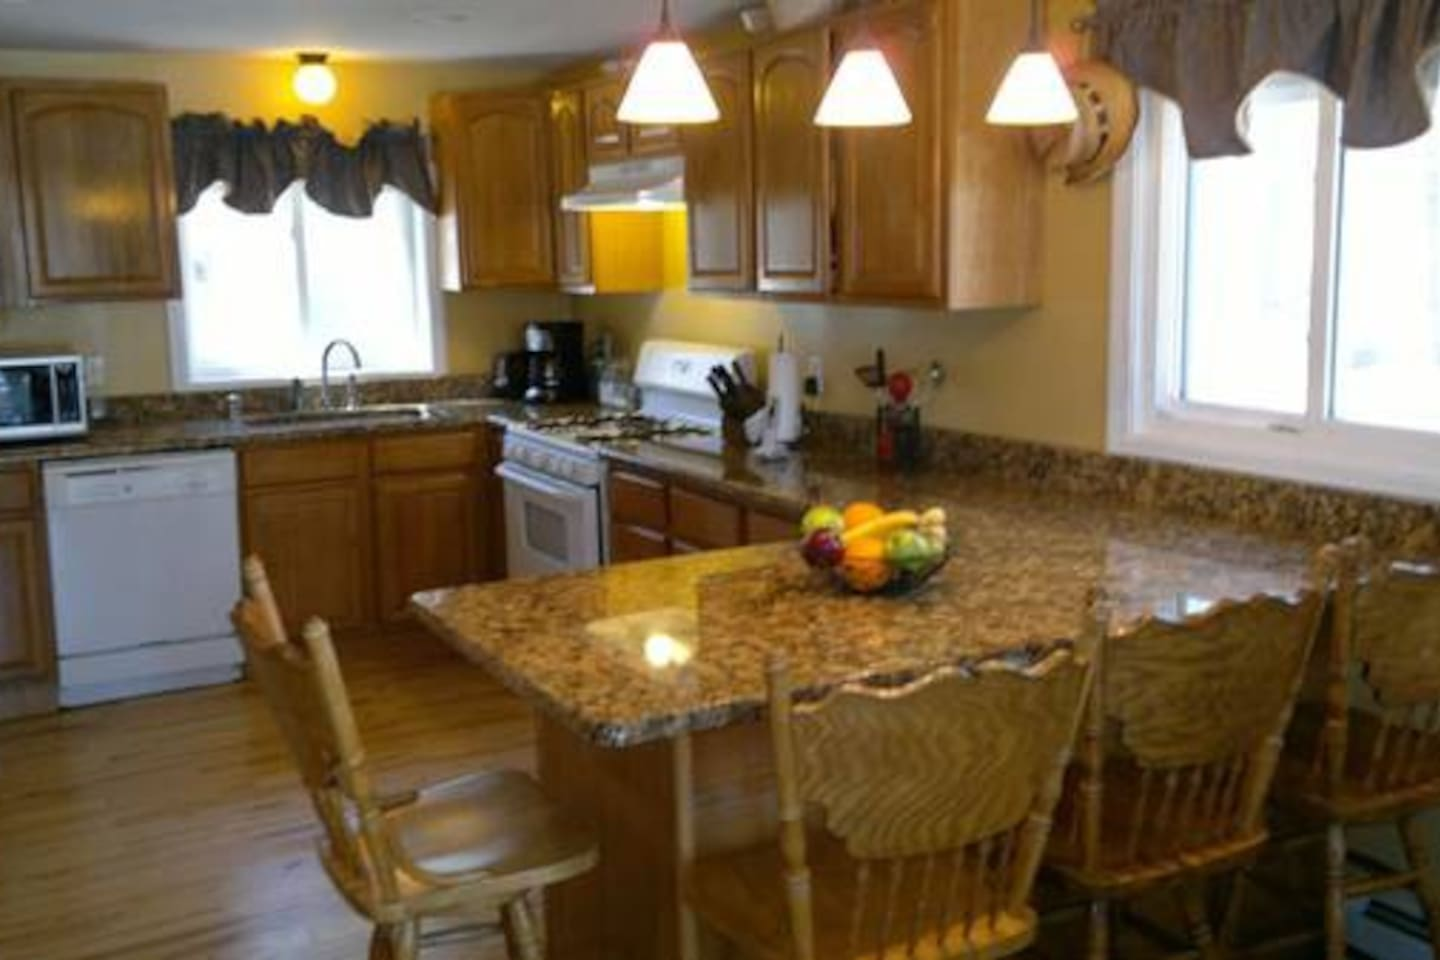 Full equipped kitchen with breakfast bar and granite counters.